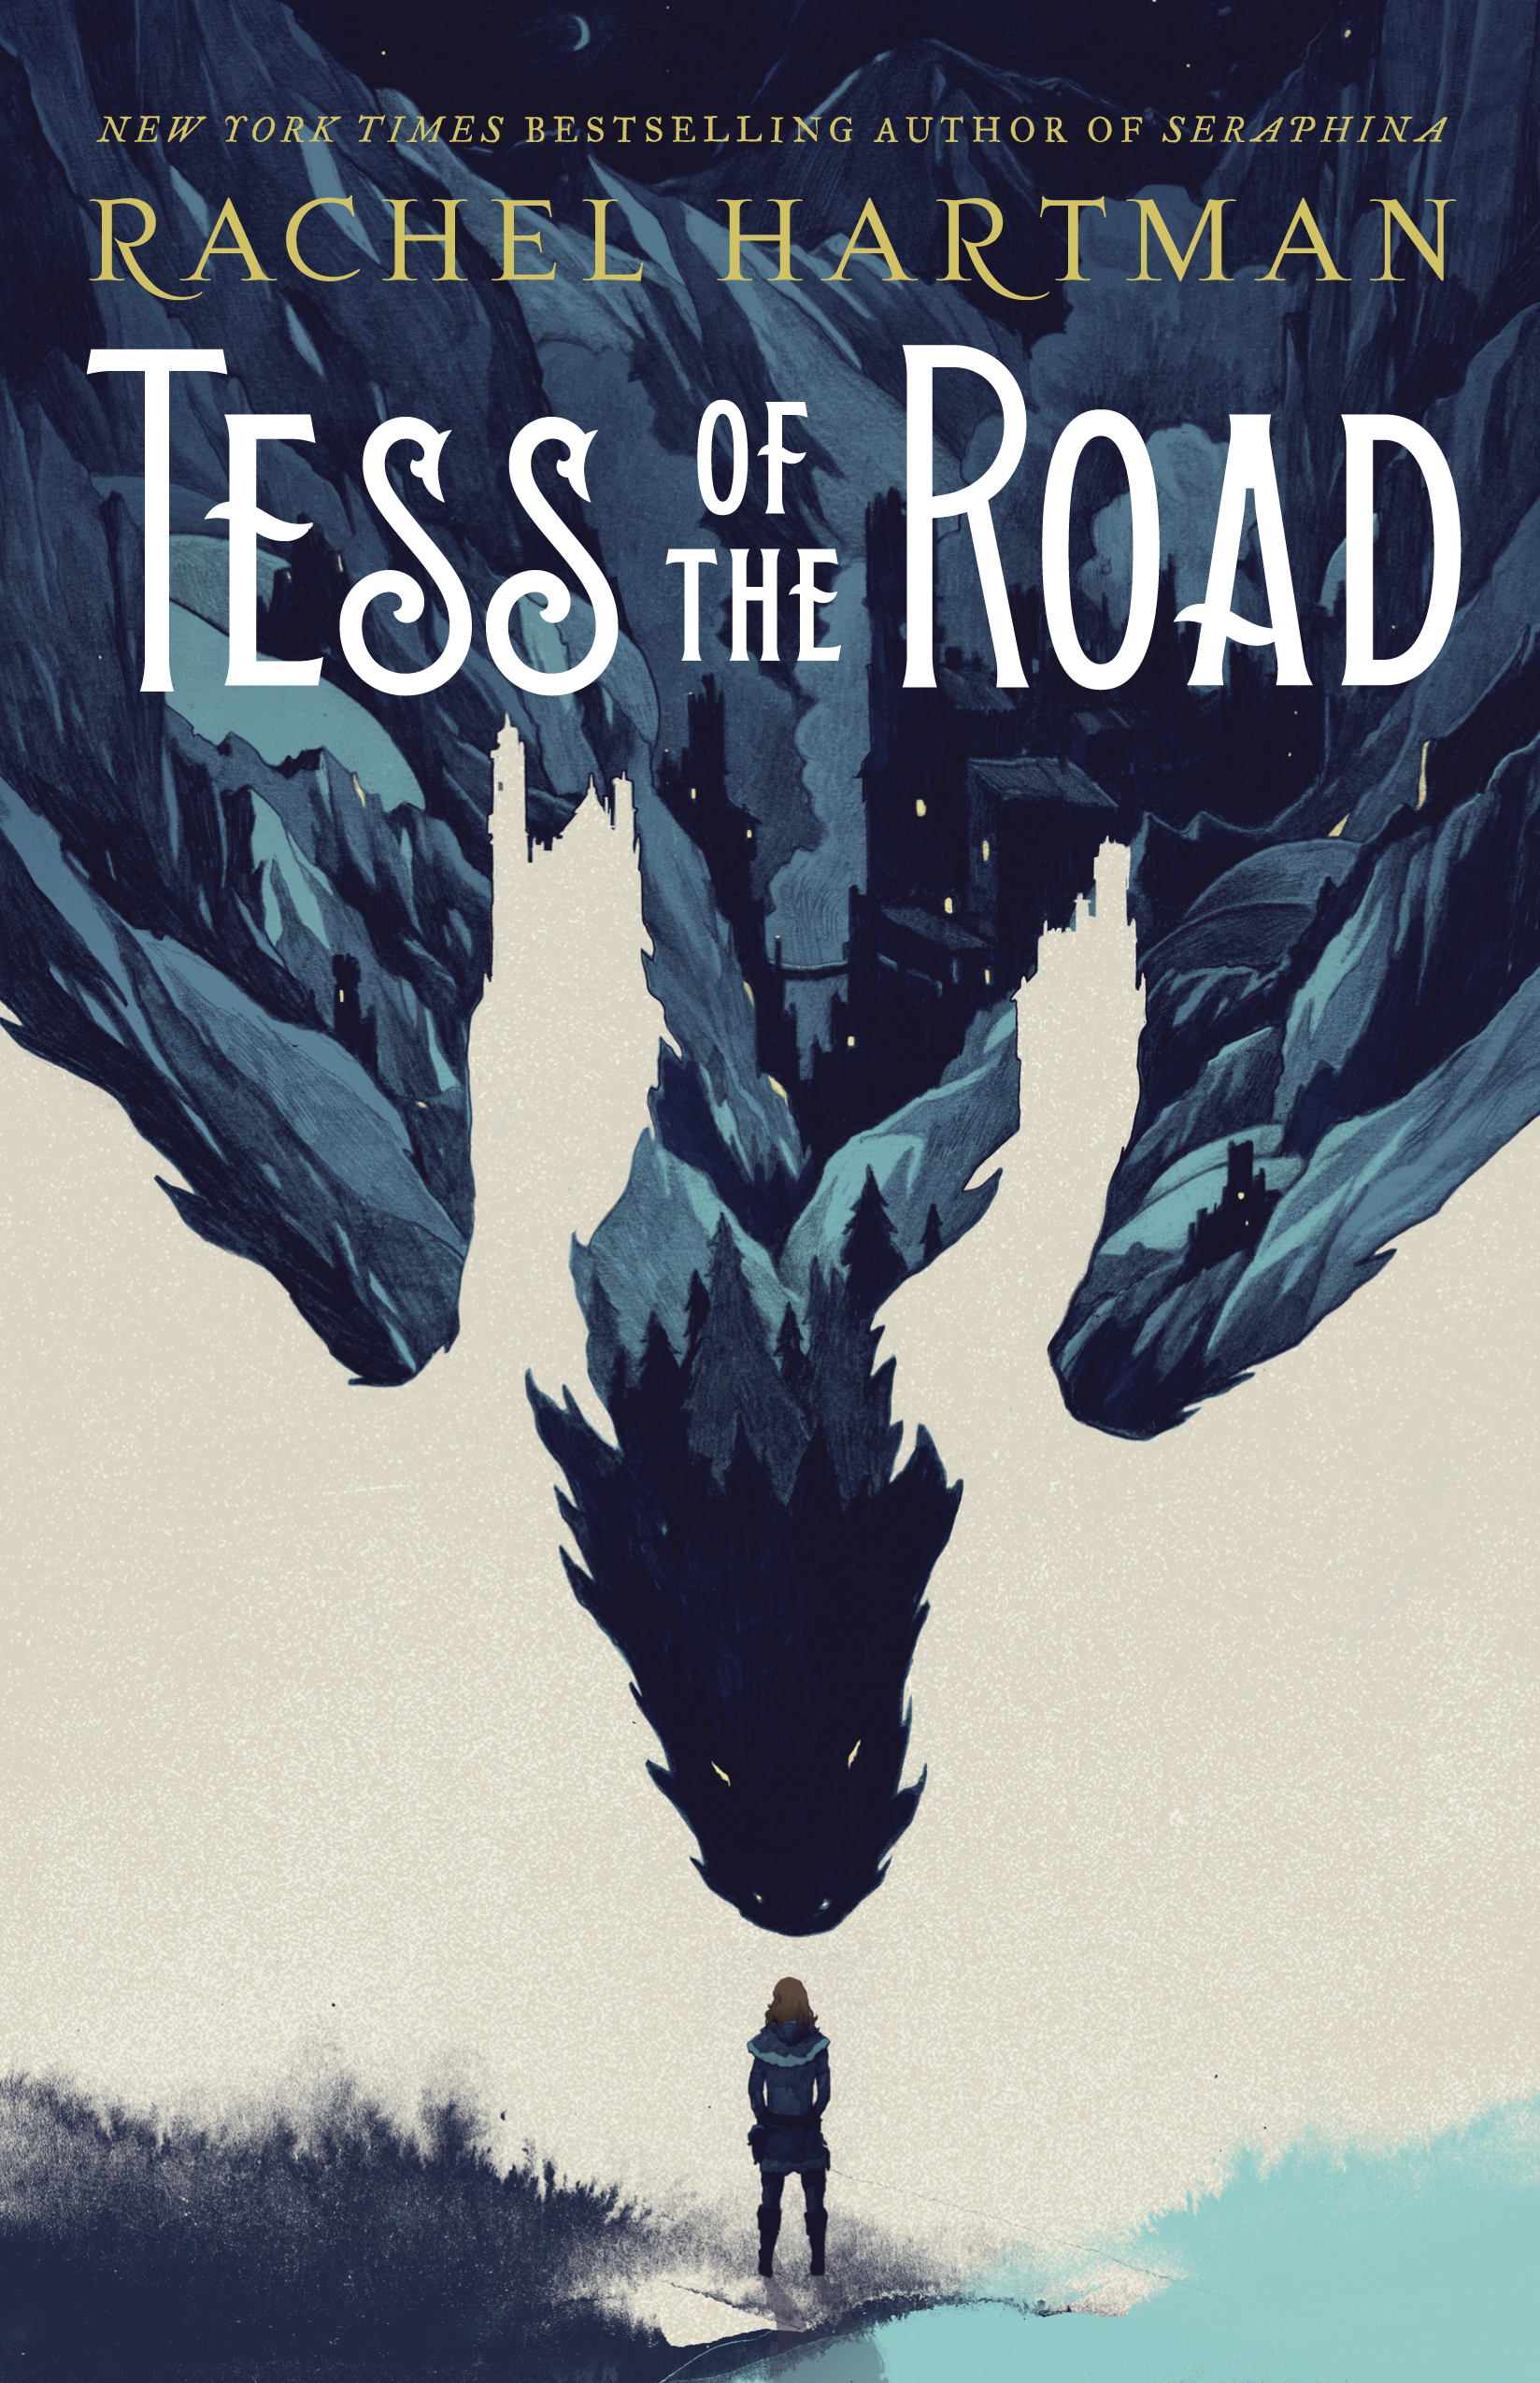 TESS OF THE ROAD_FINAL 08.17.17[1] (1)